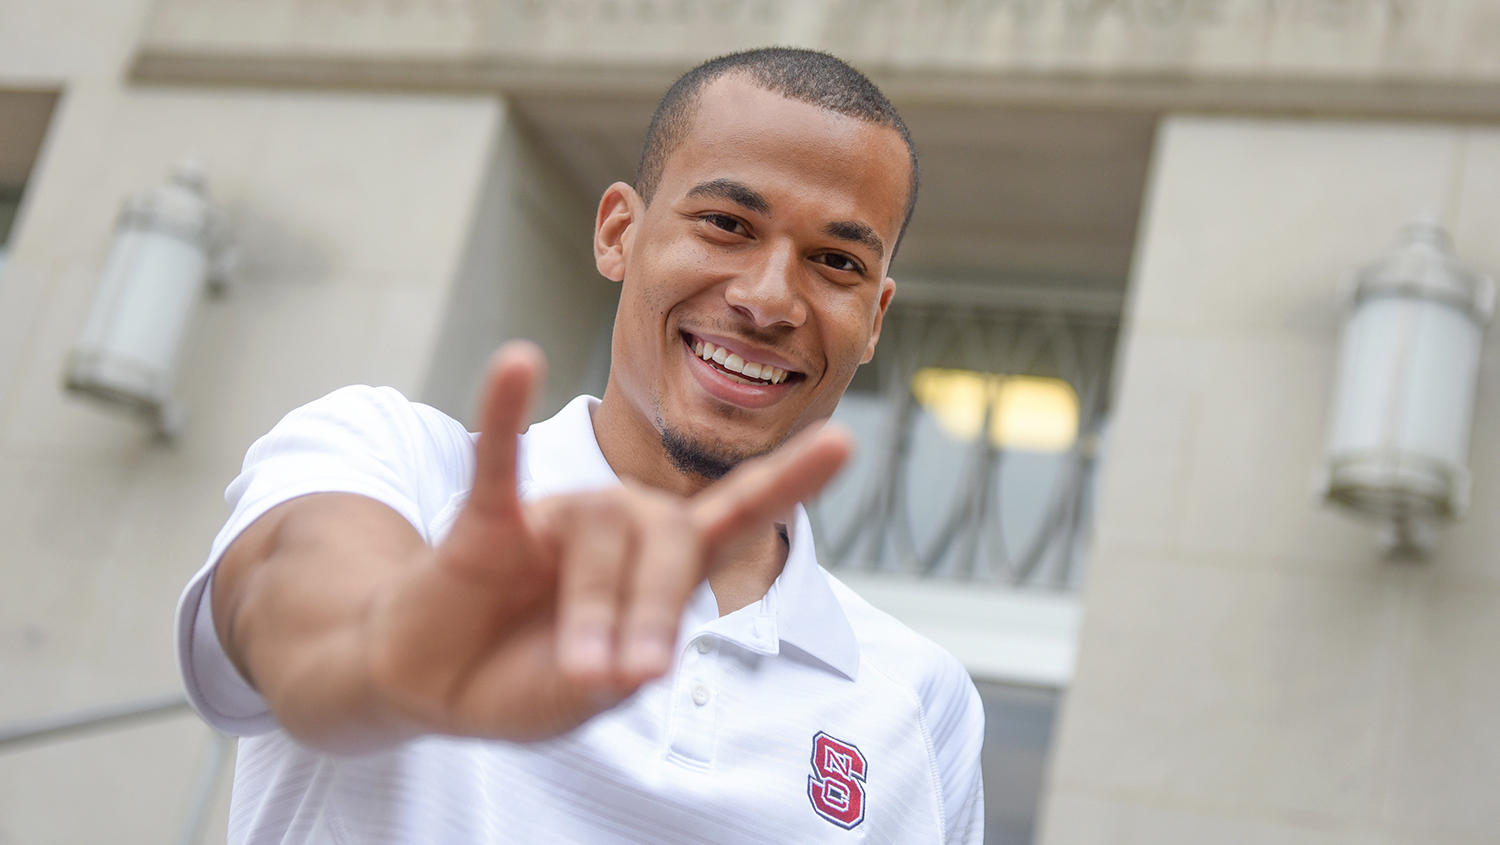 NC State Student on campus